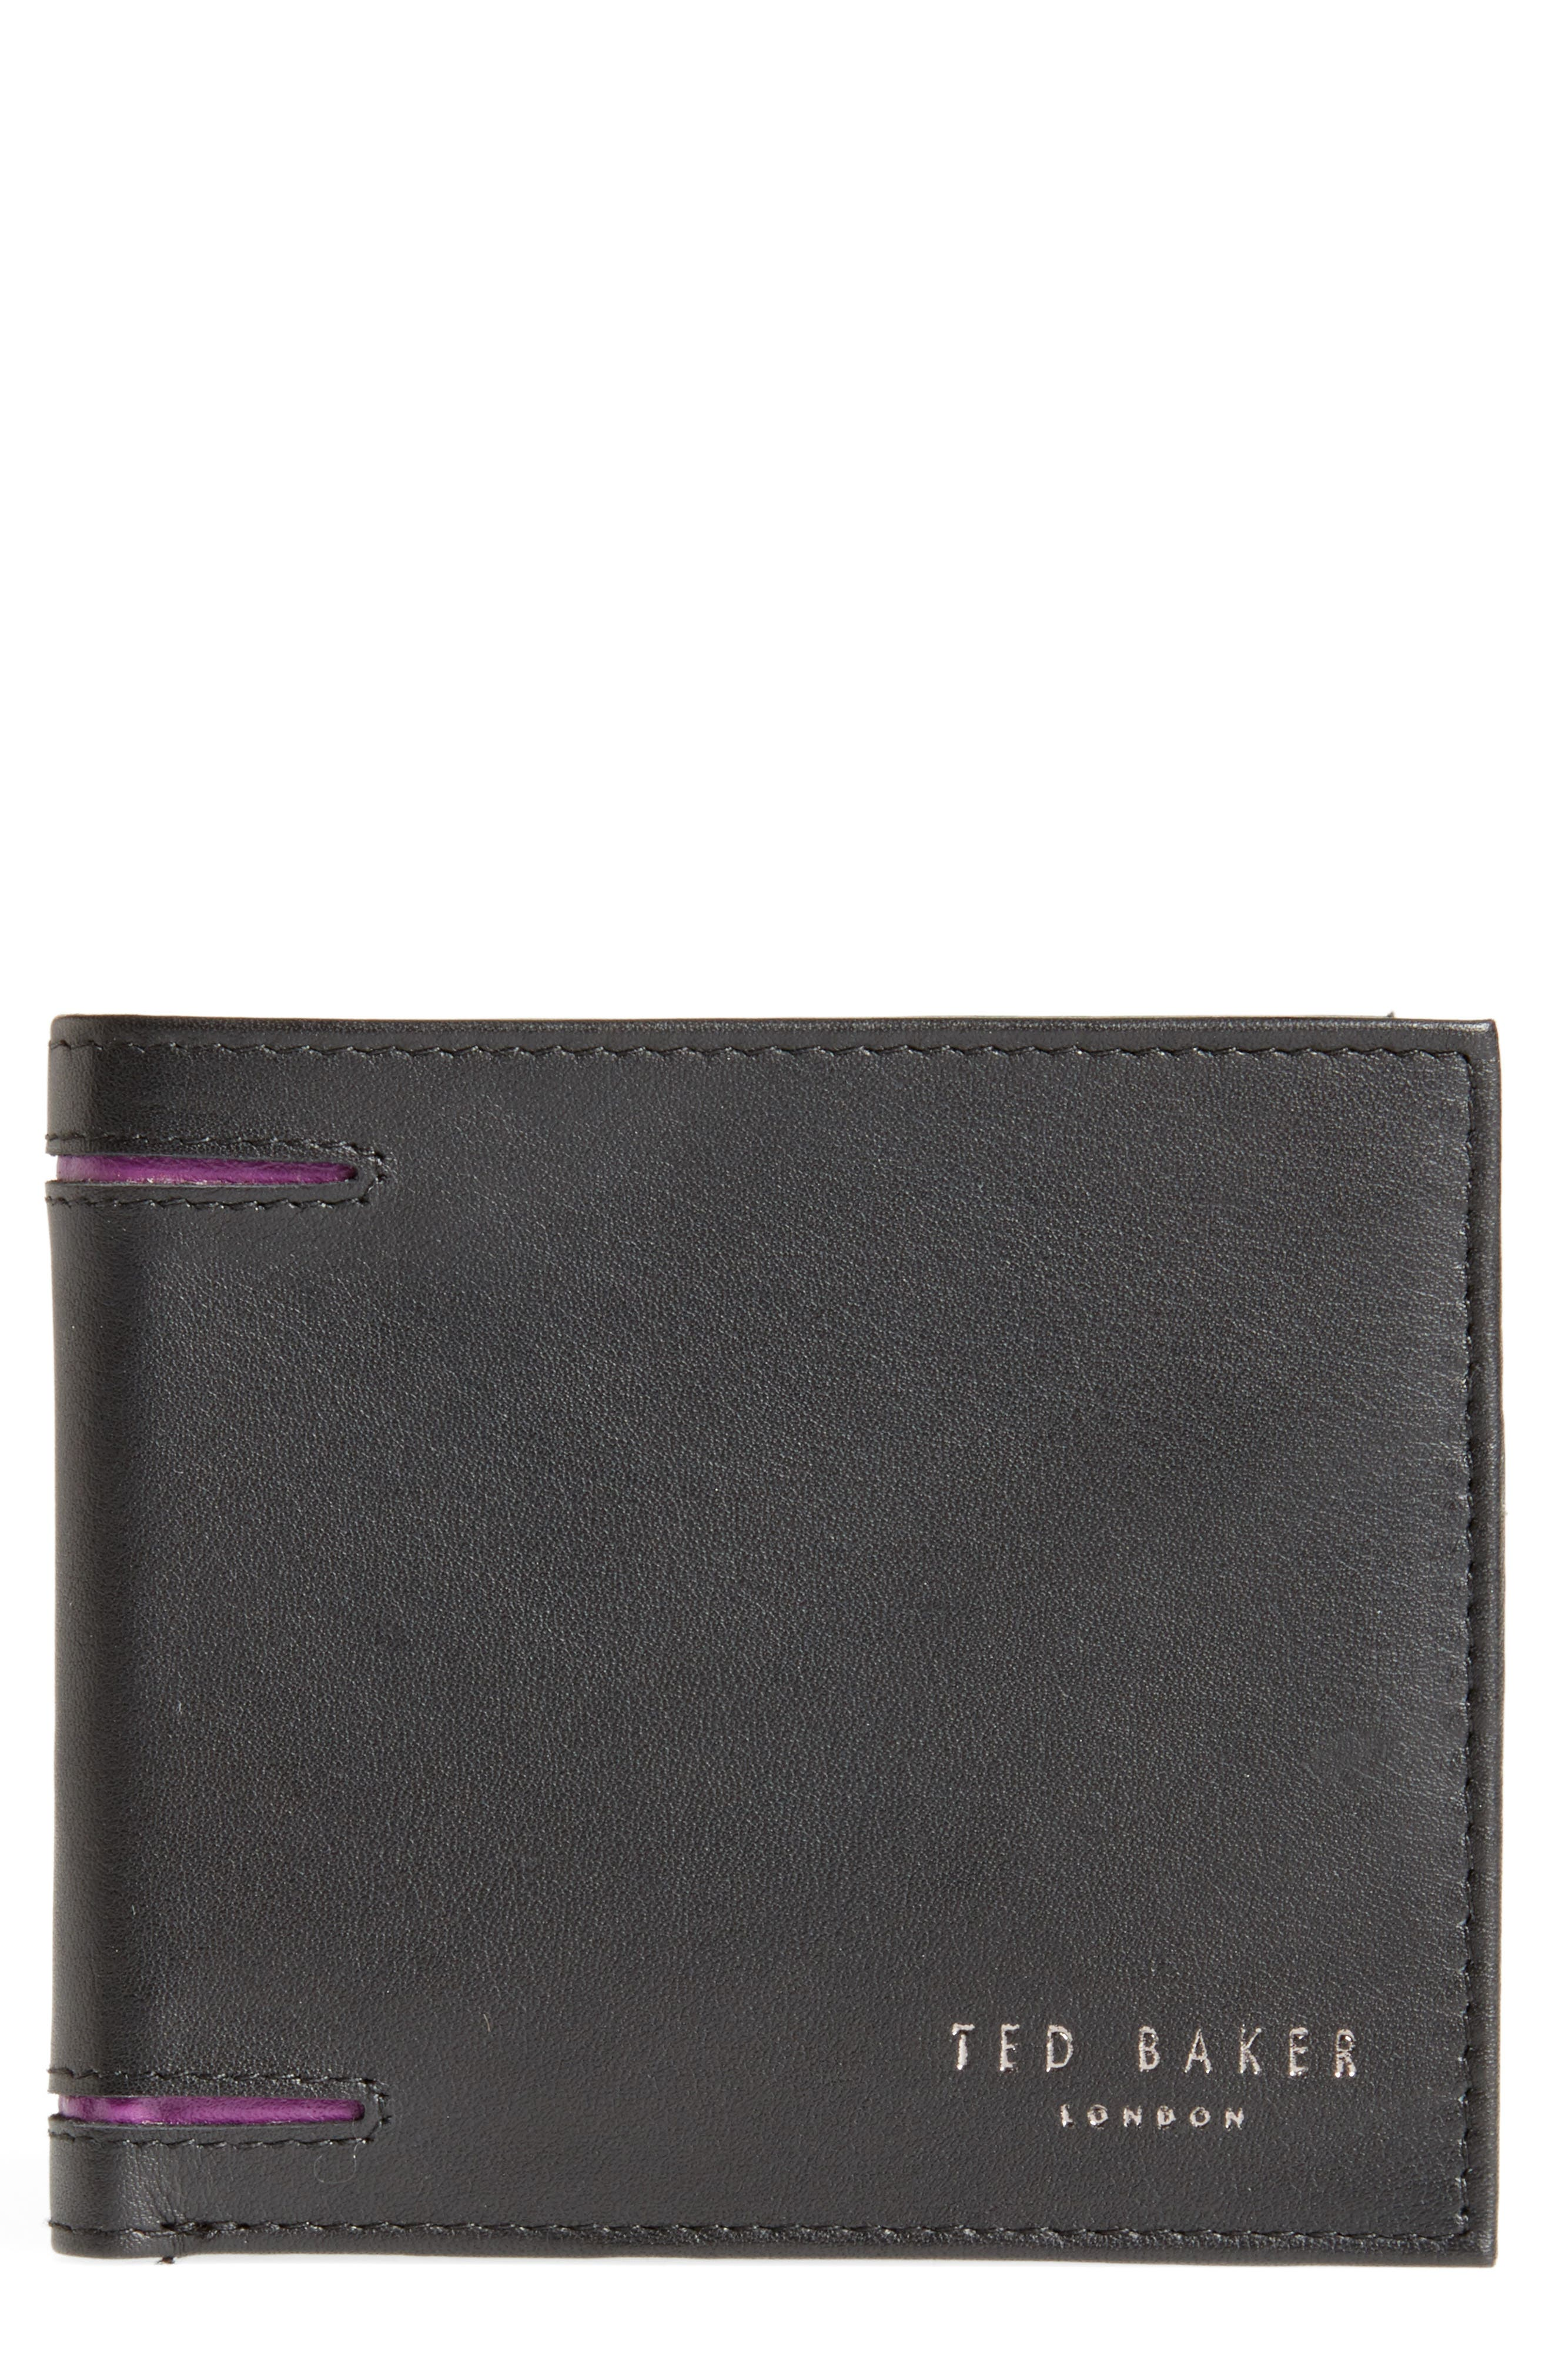 Figgy Inset Spine Leather Wallet,                             Main thumbnail 1, color,                             Black